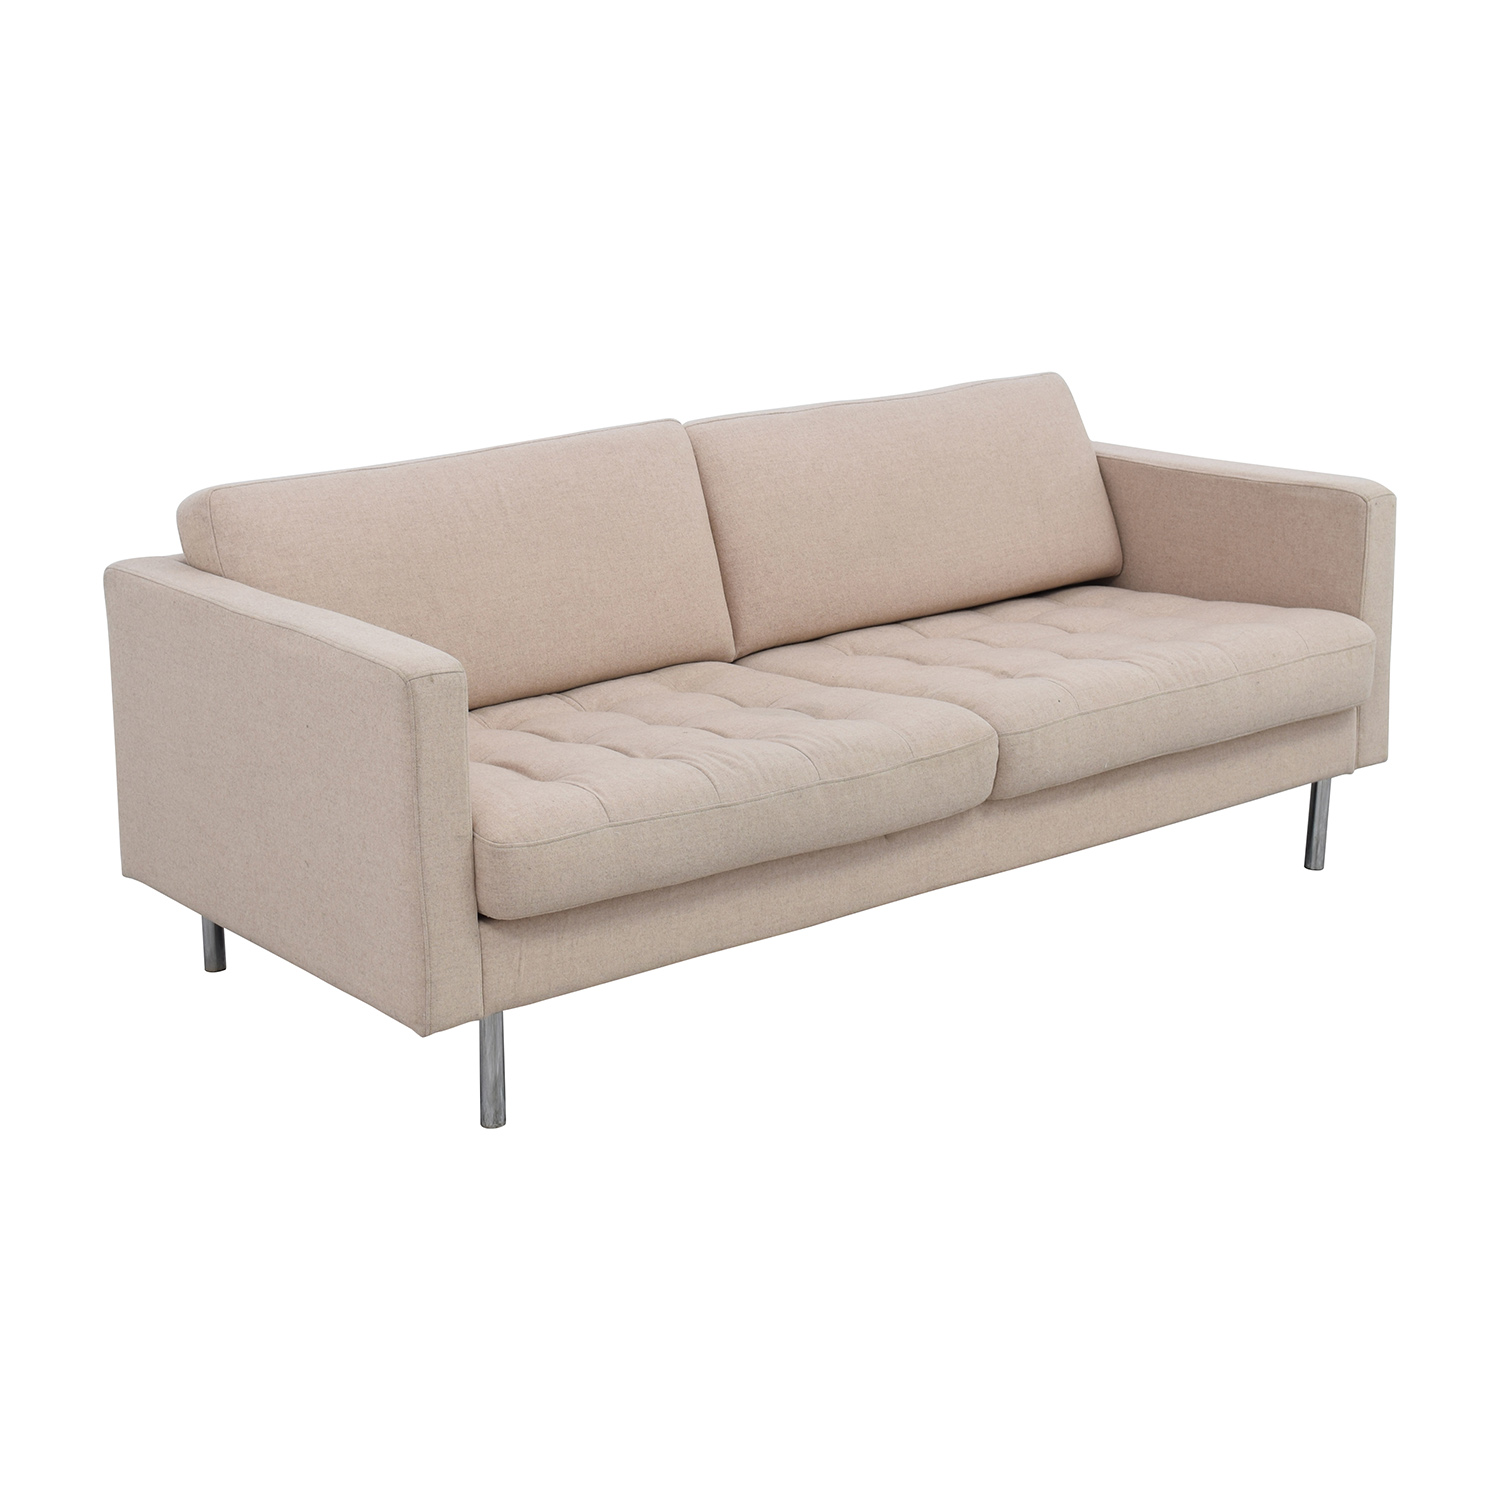 65 Off Boconcept Boconcept Carmo Sand Two Tufted Cushion Sofa Sofas